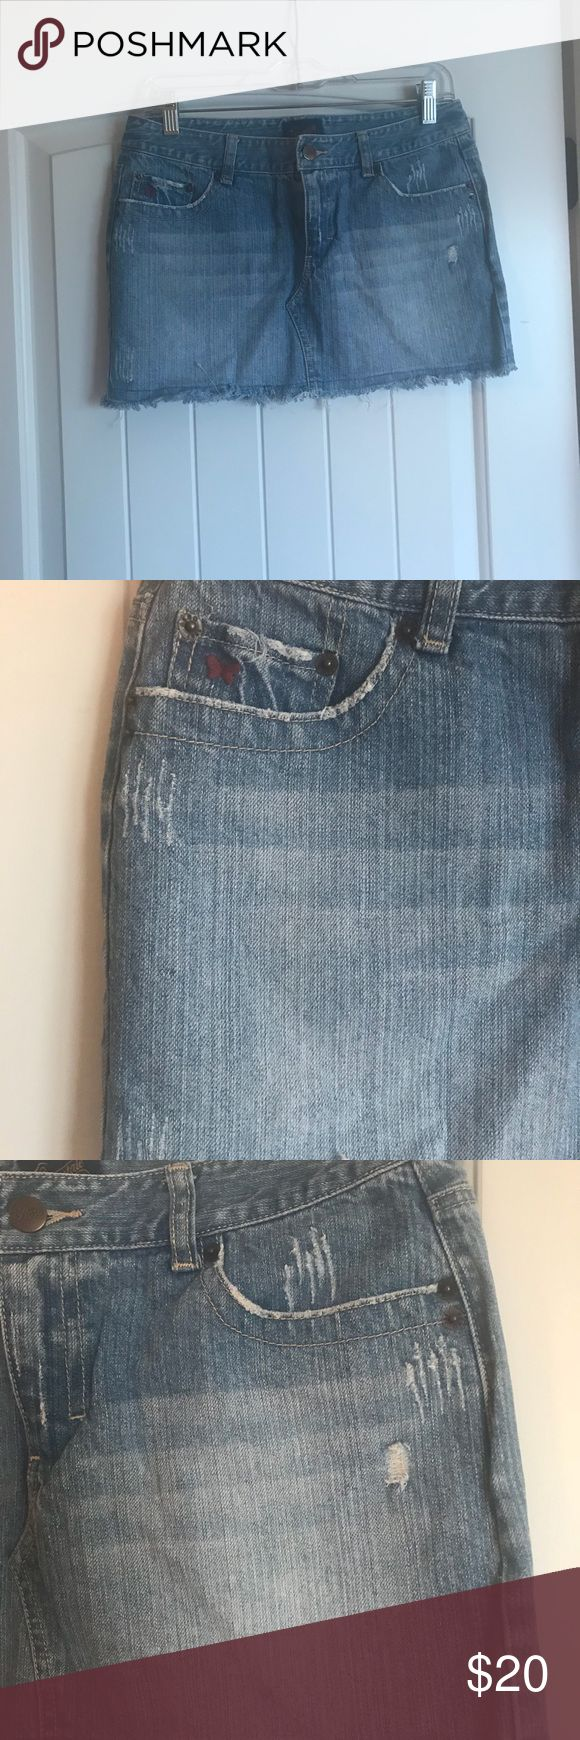 "Aeropostale like new Jean mini skirt size 5/6 Aeropostale like new Jean mini skirt size 5/6 worn once. 12"" long Aeropostale Skirts Mini"